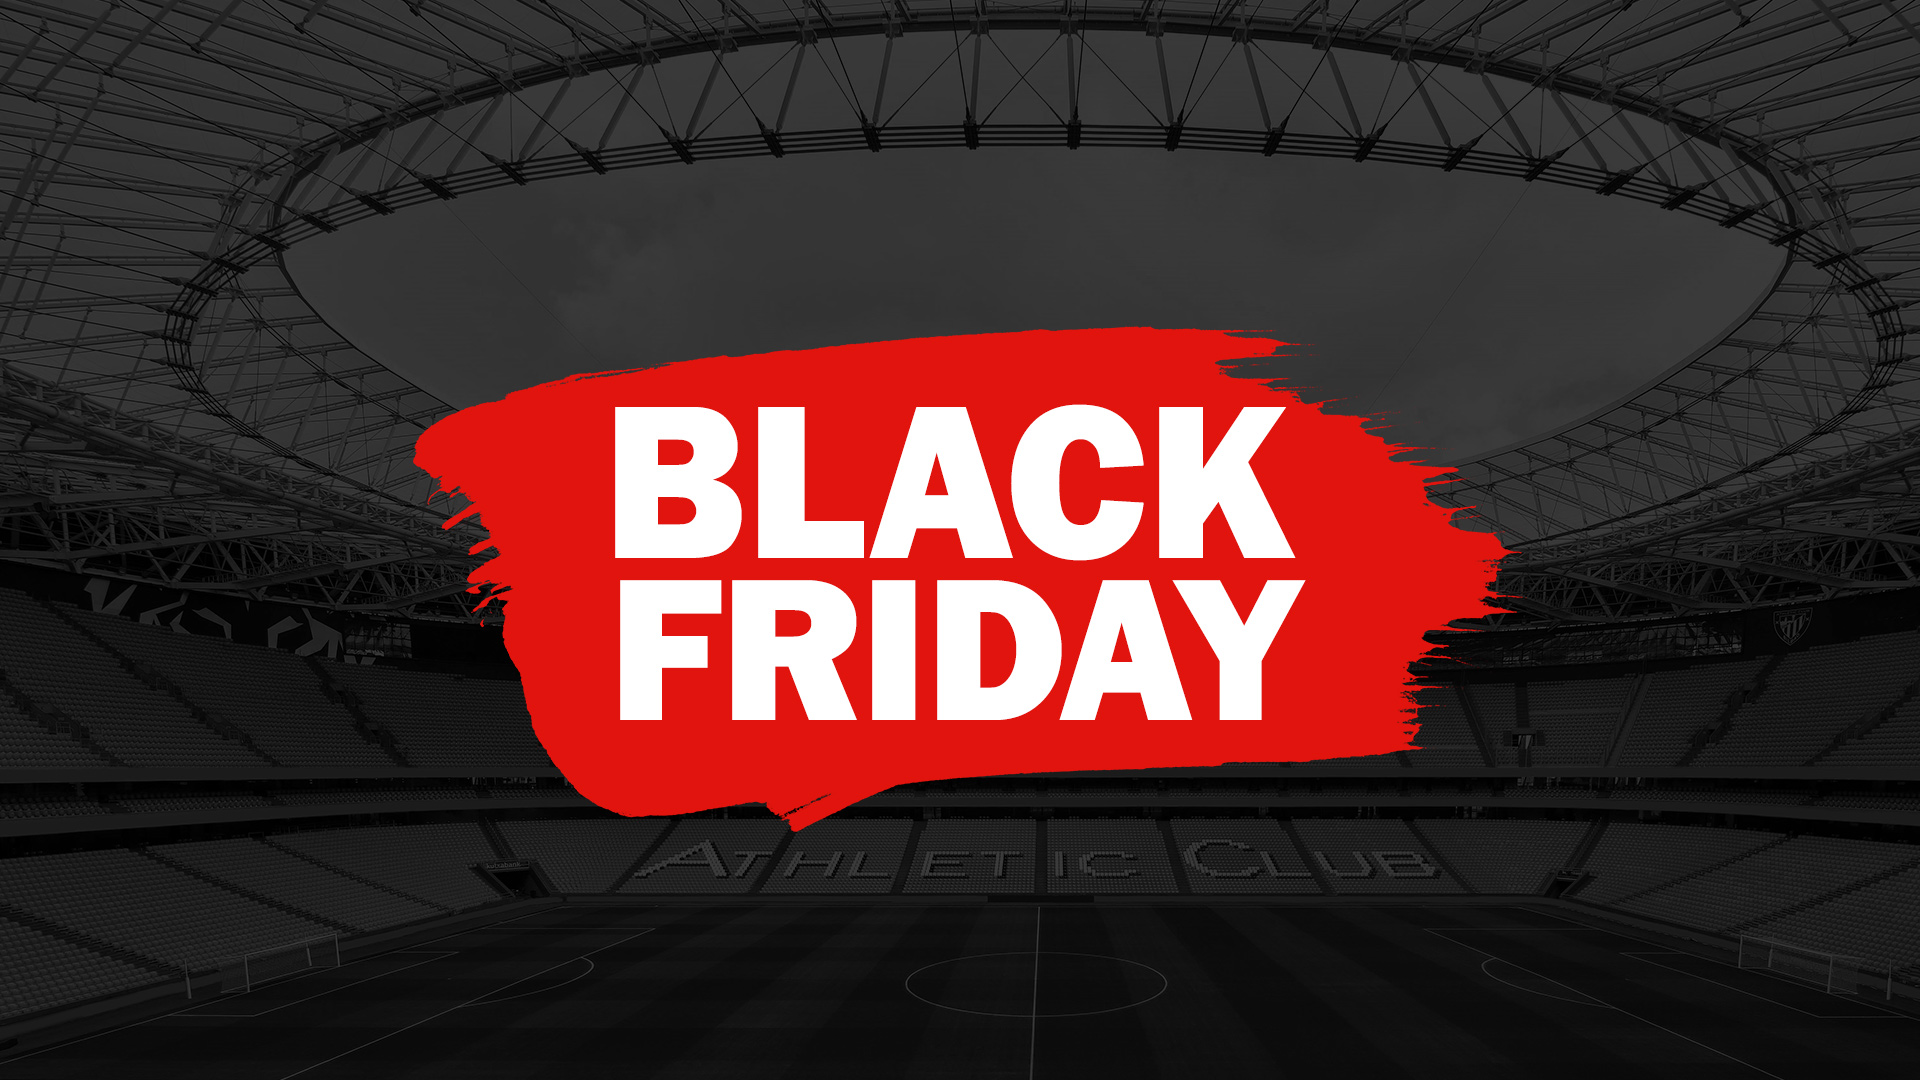 Black Friday Week in Athletic Club stores